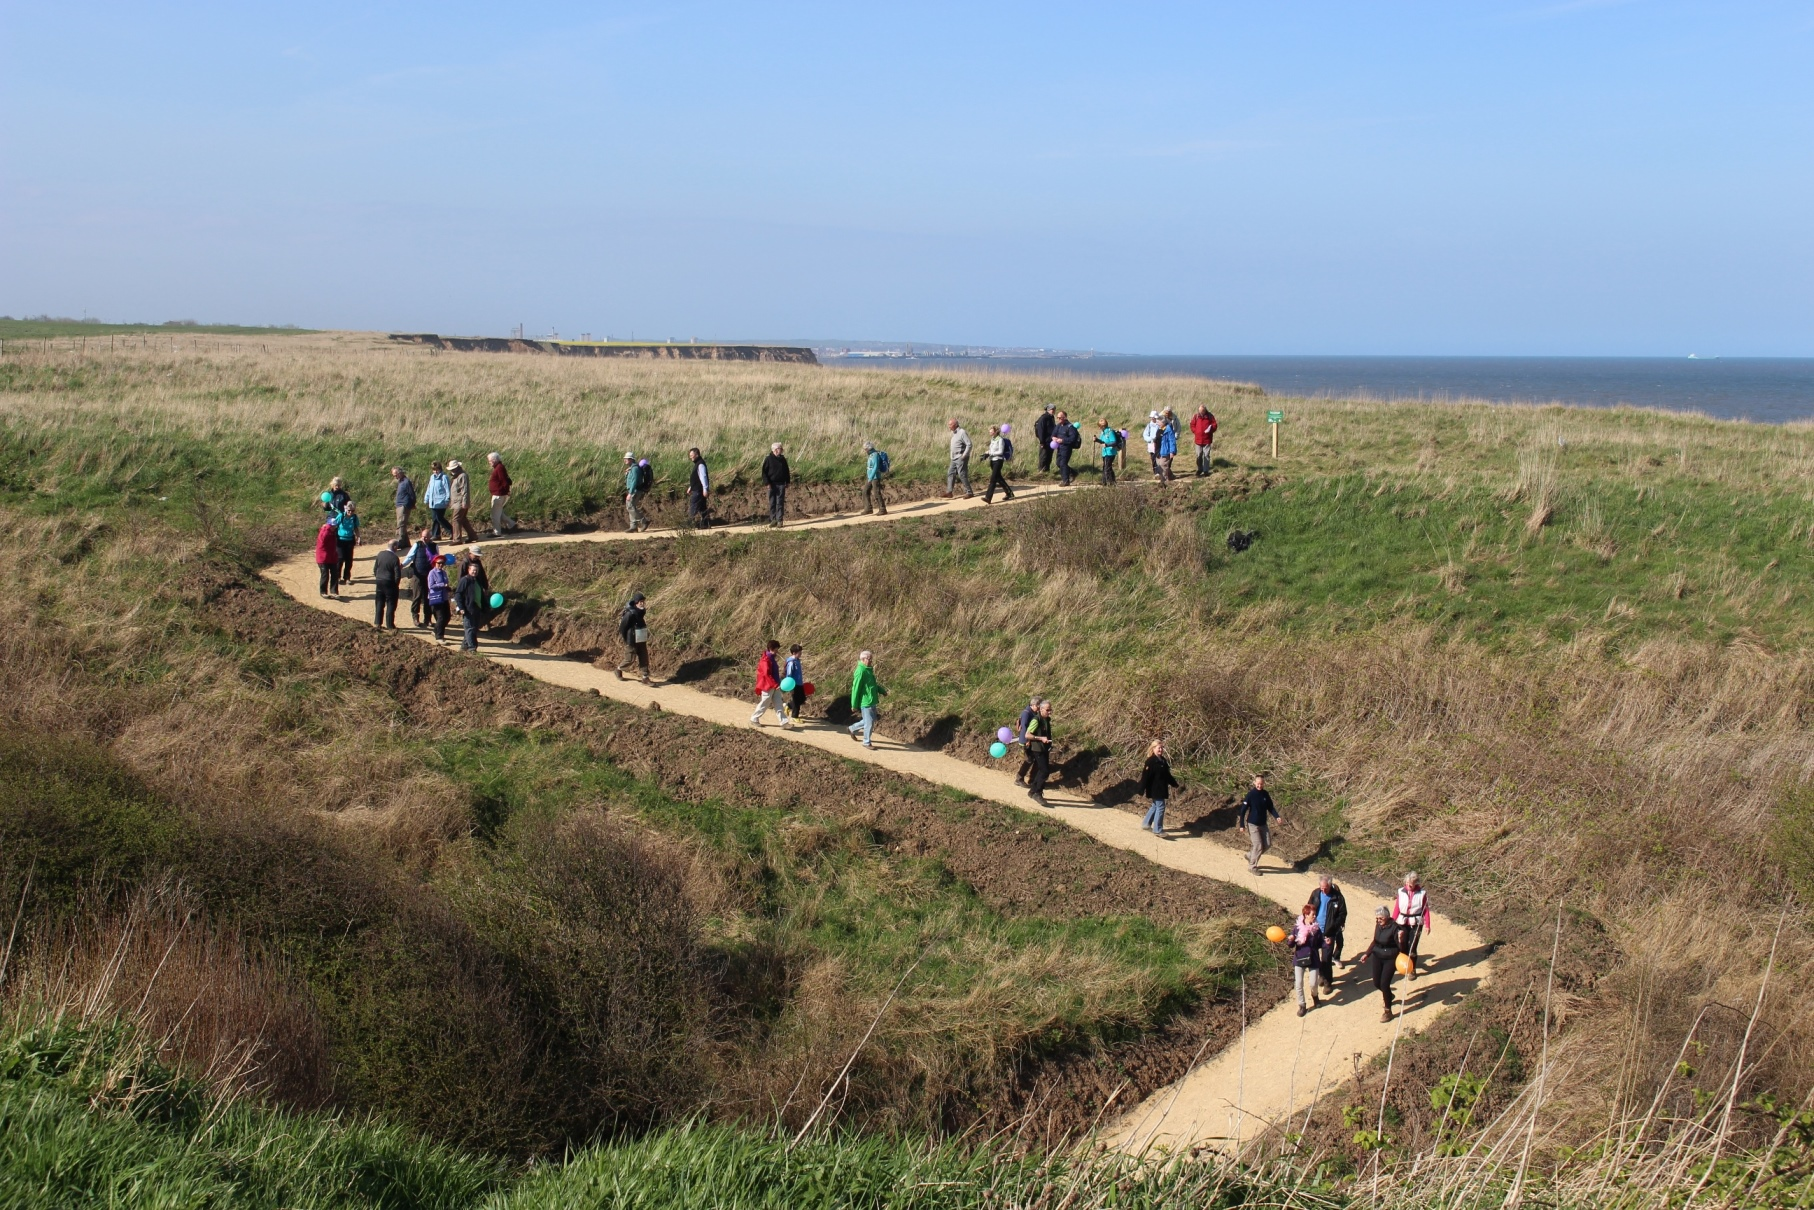 Ramblers take in section of new coastal path in the North-East